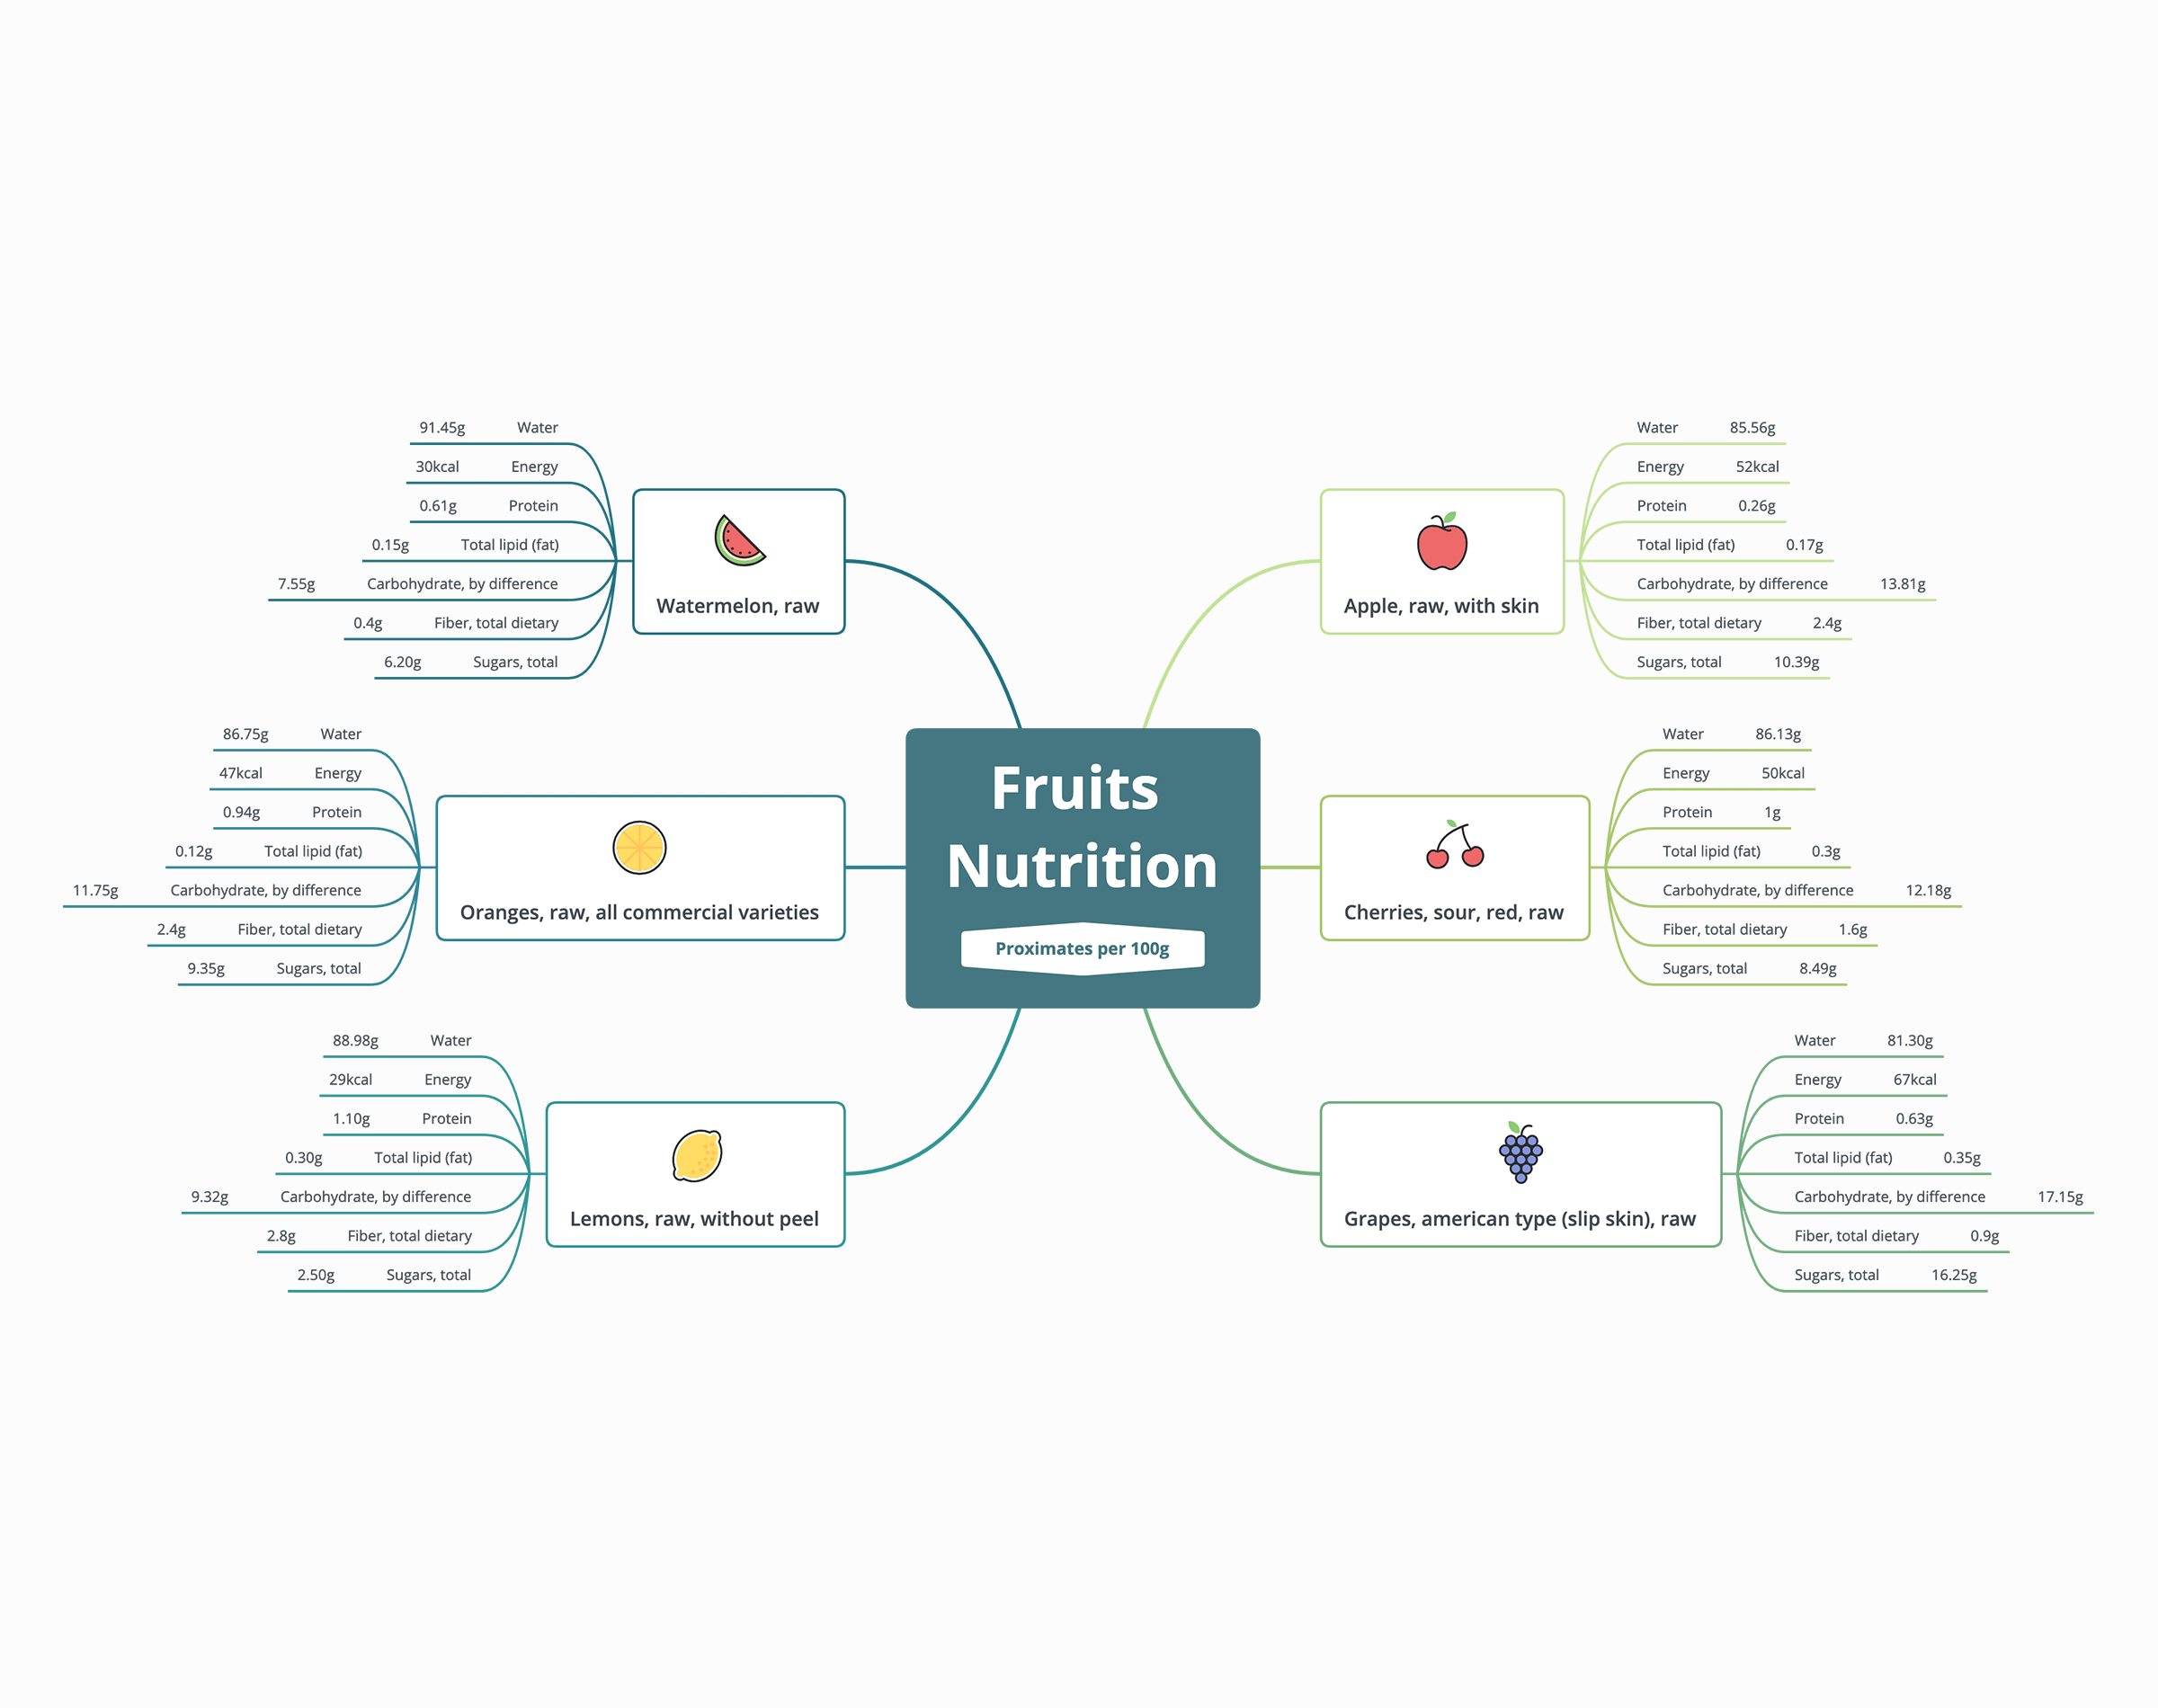 Fruits Nutrition